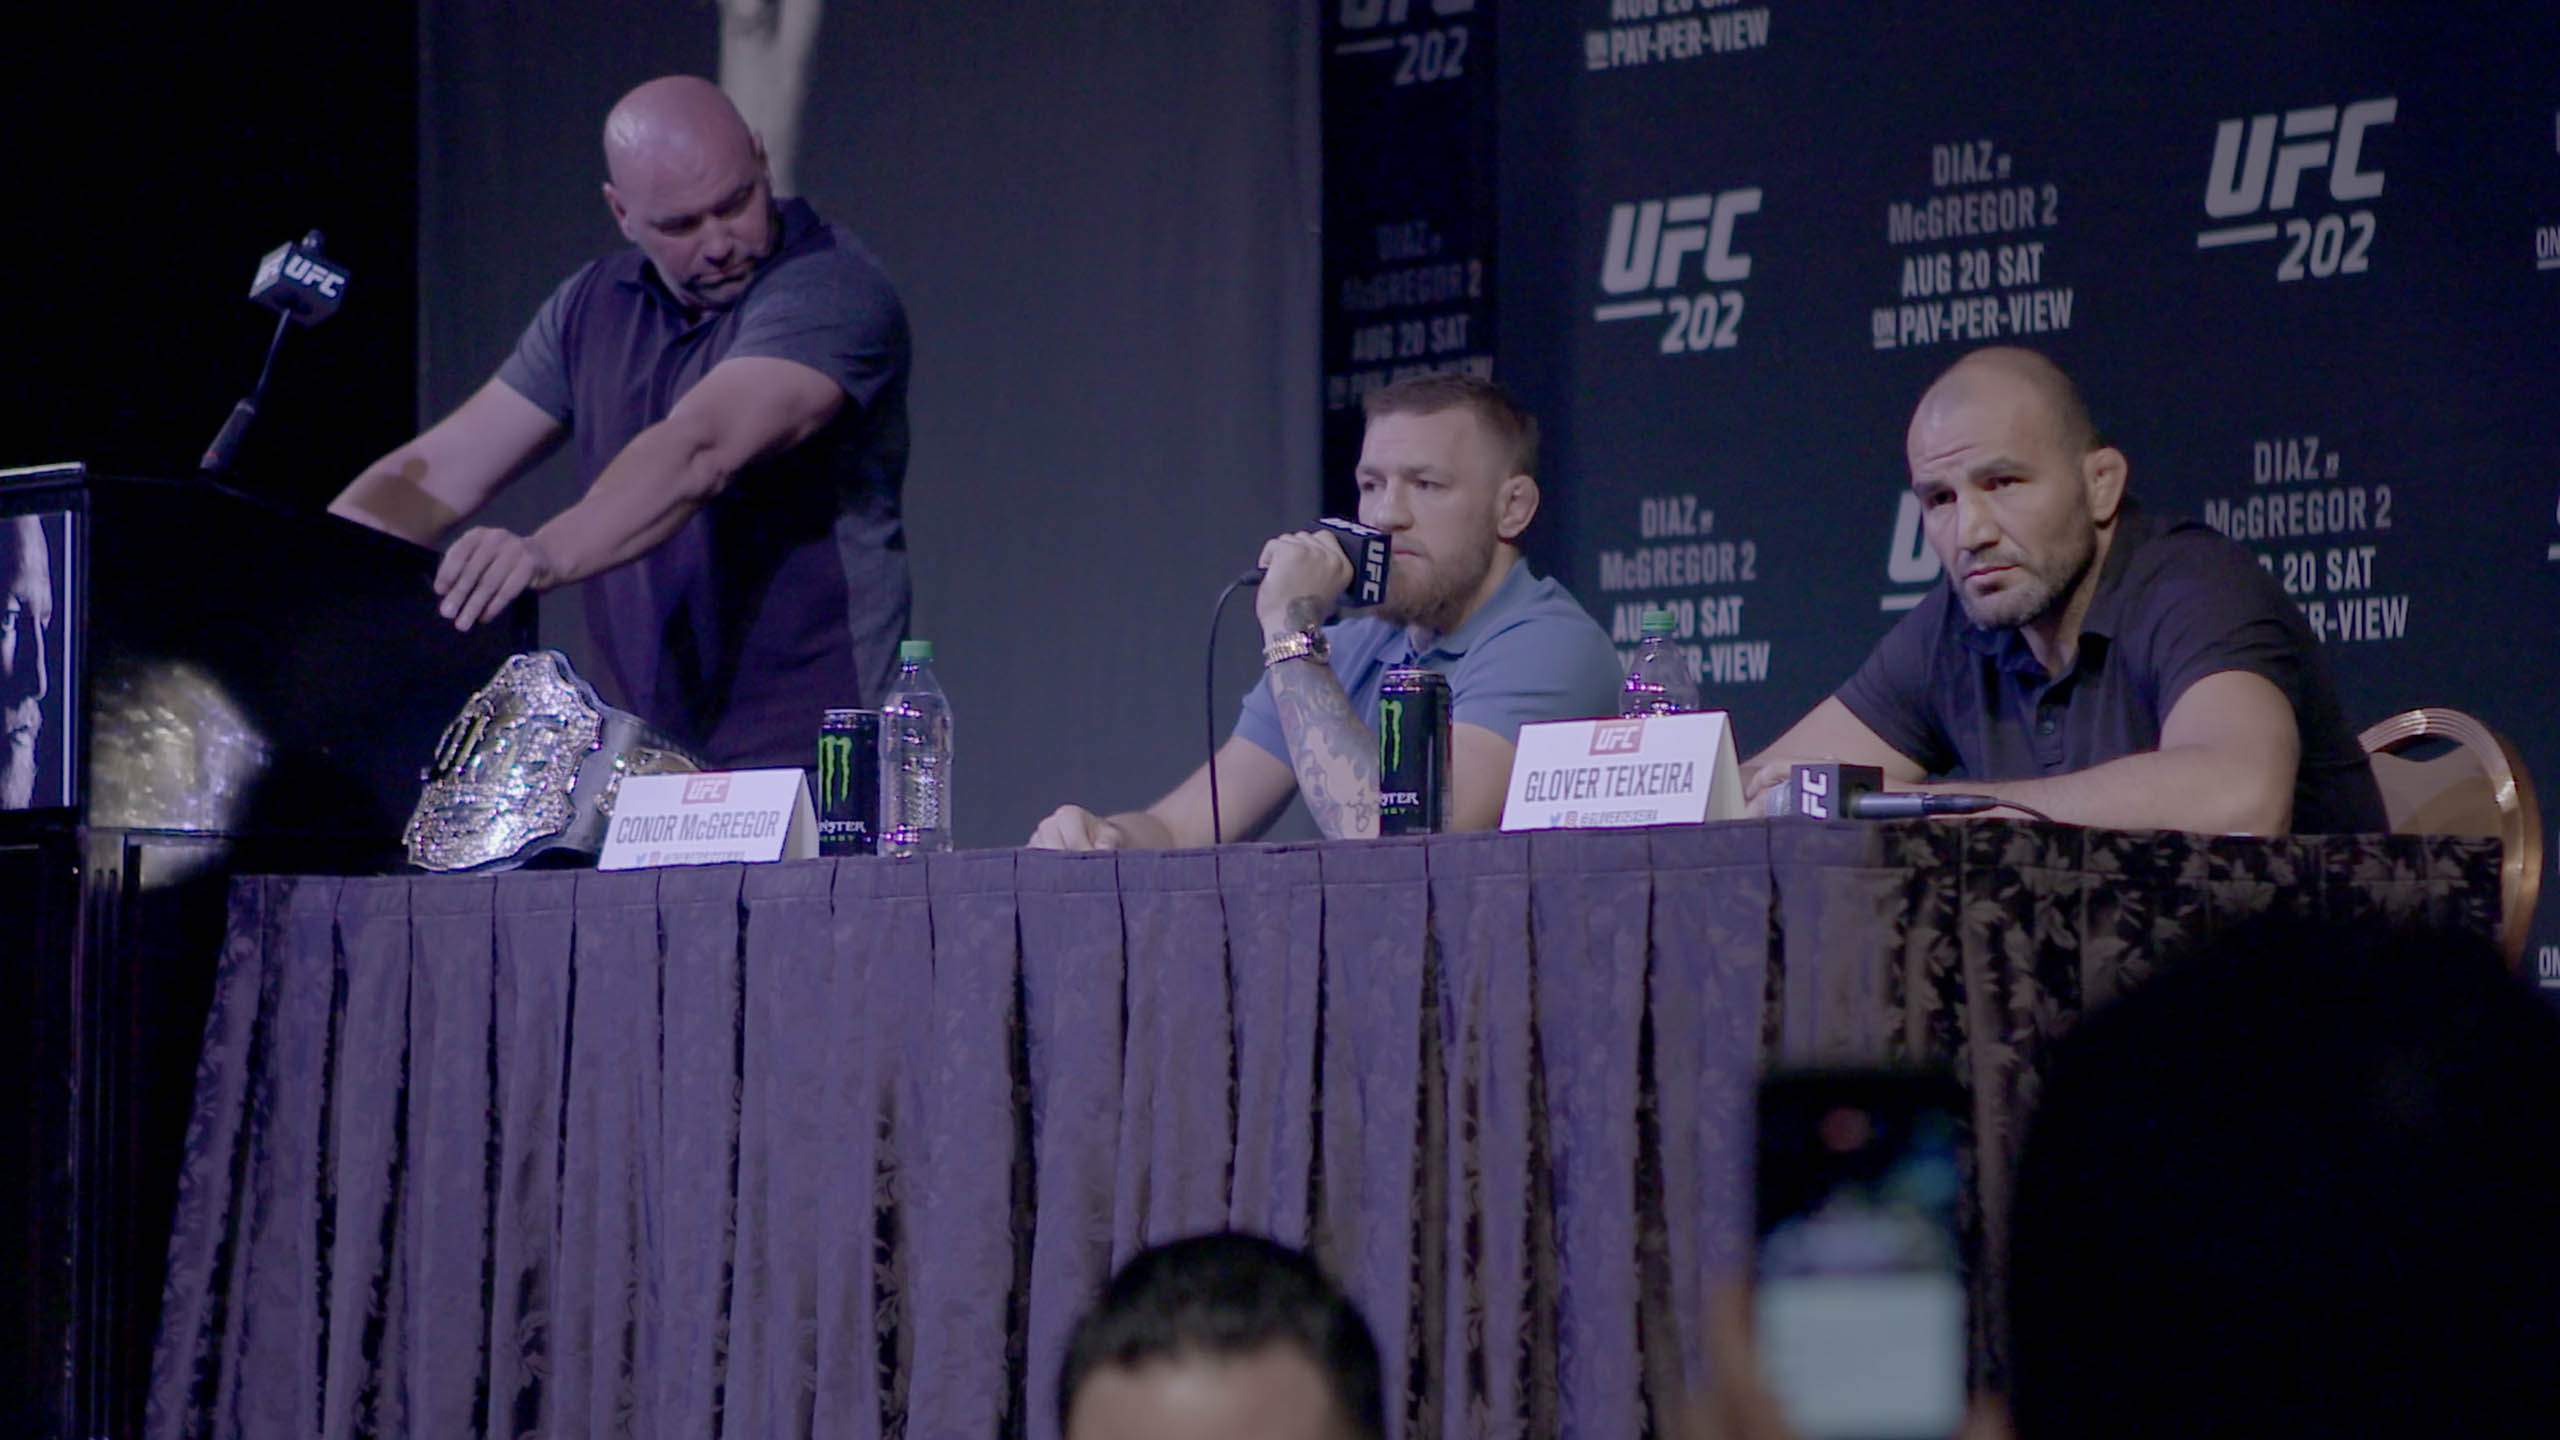 Image 1 of the Conor McGregor: Notorious gallery